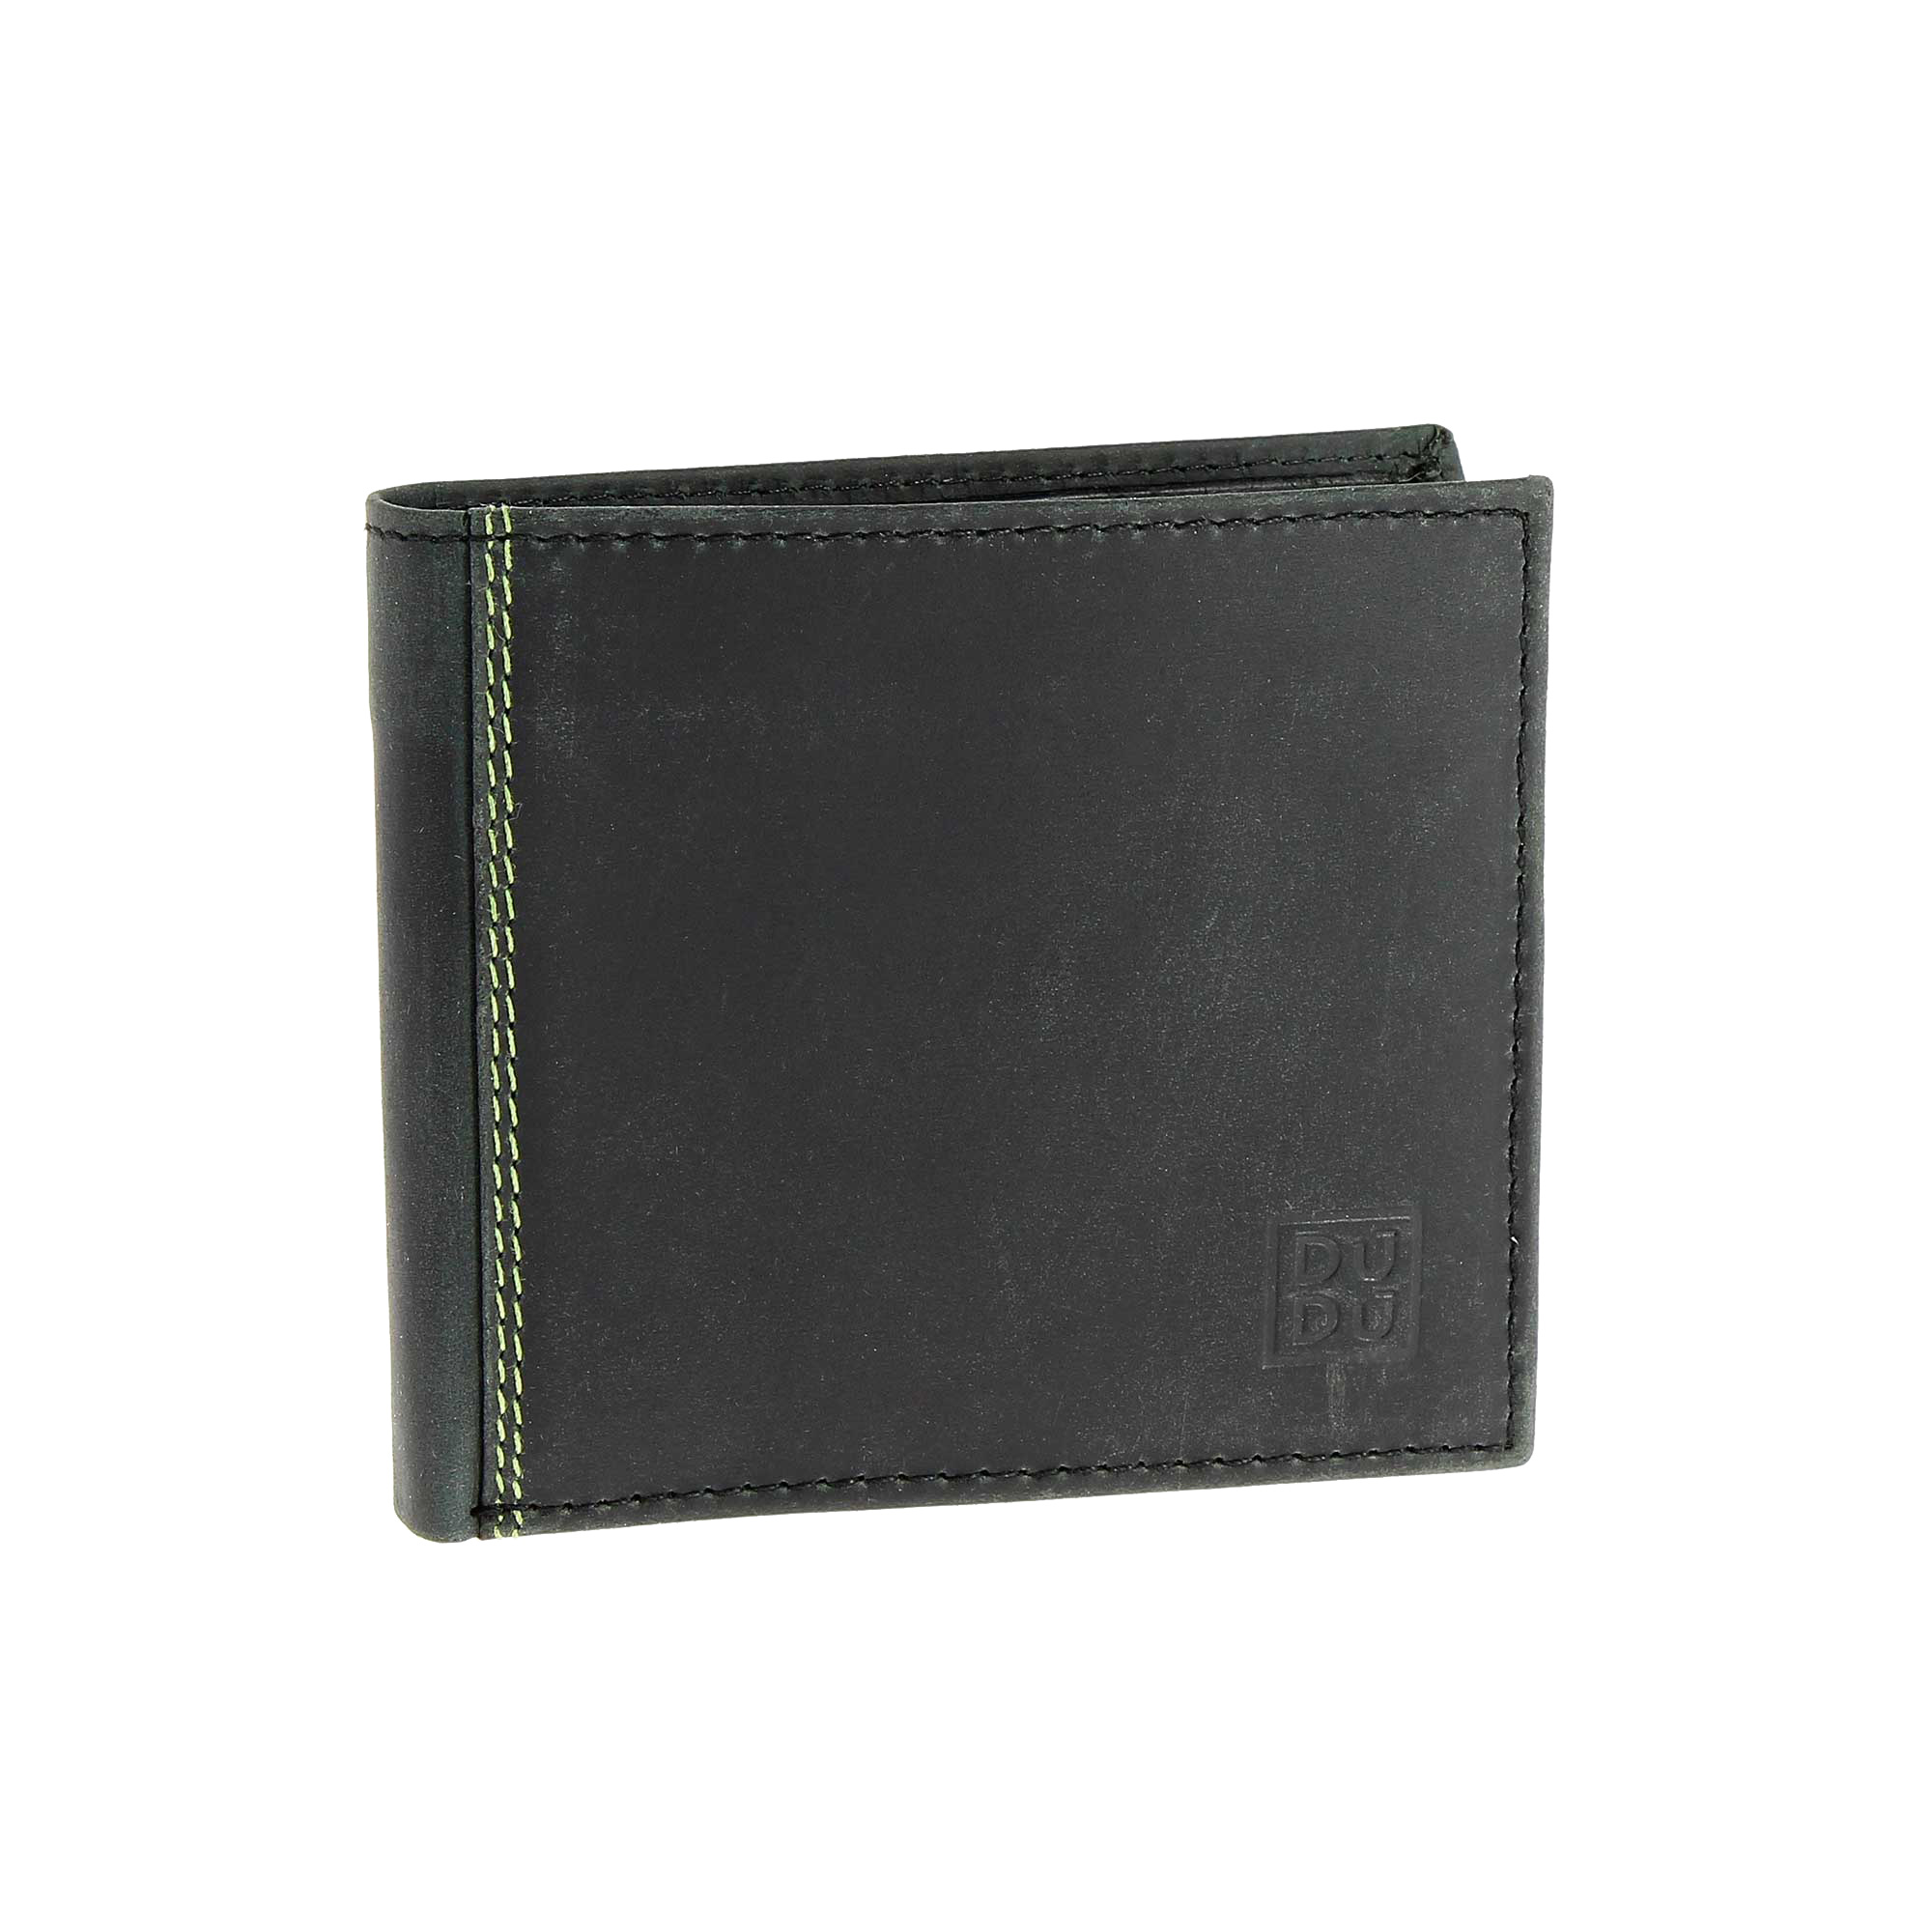 wallet that holds multiple cryptocurrencies